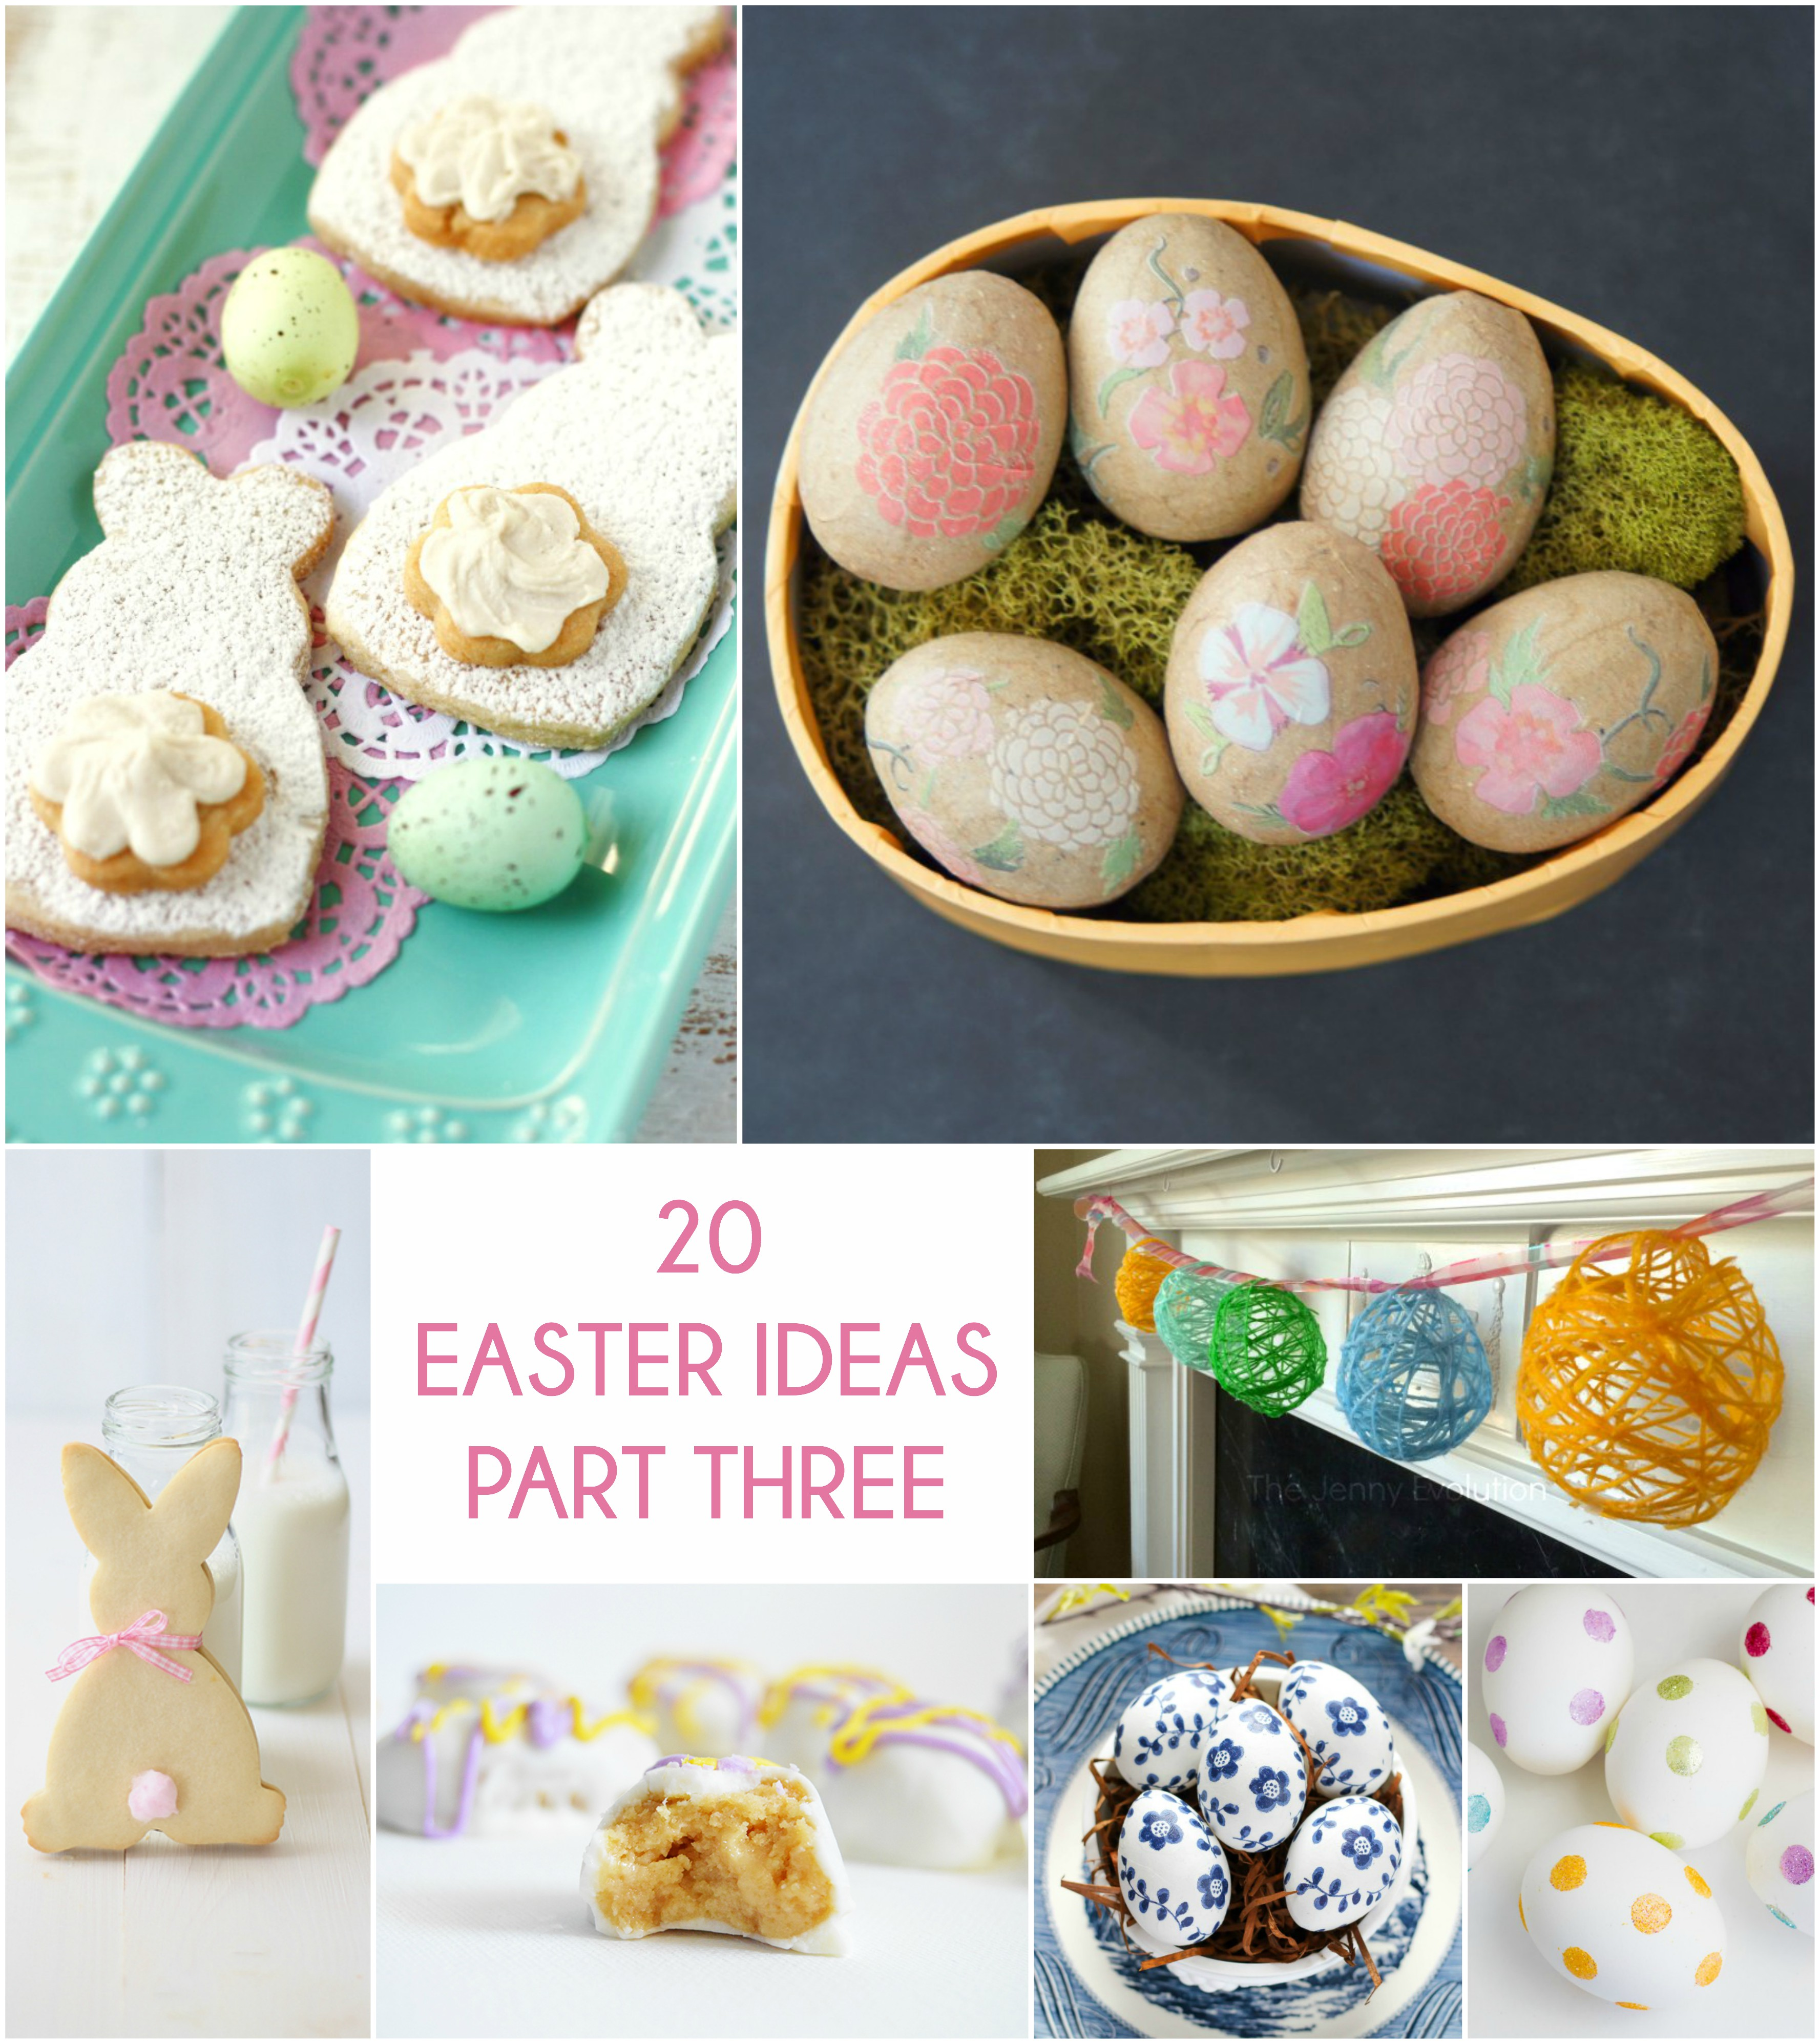 20 Easter Ideas Pt 3